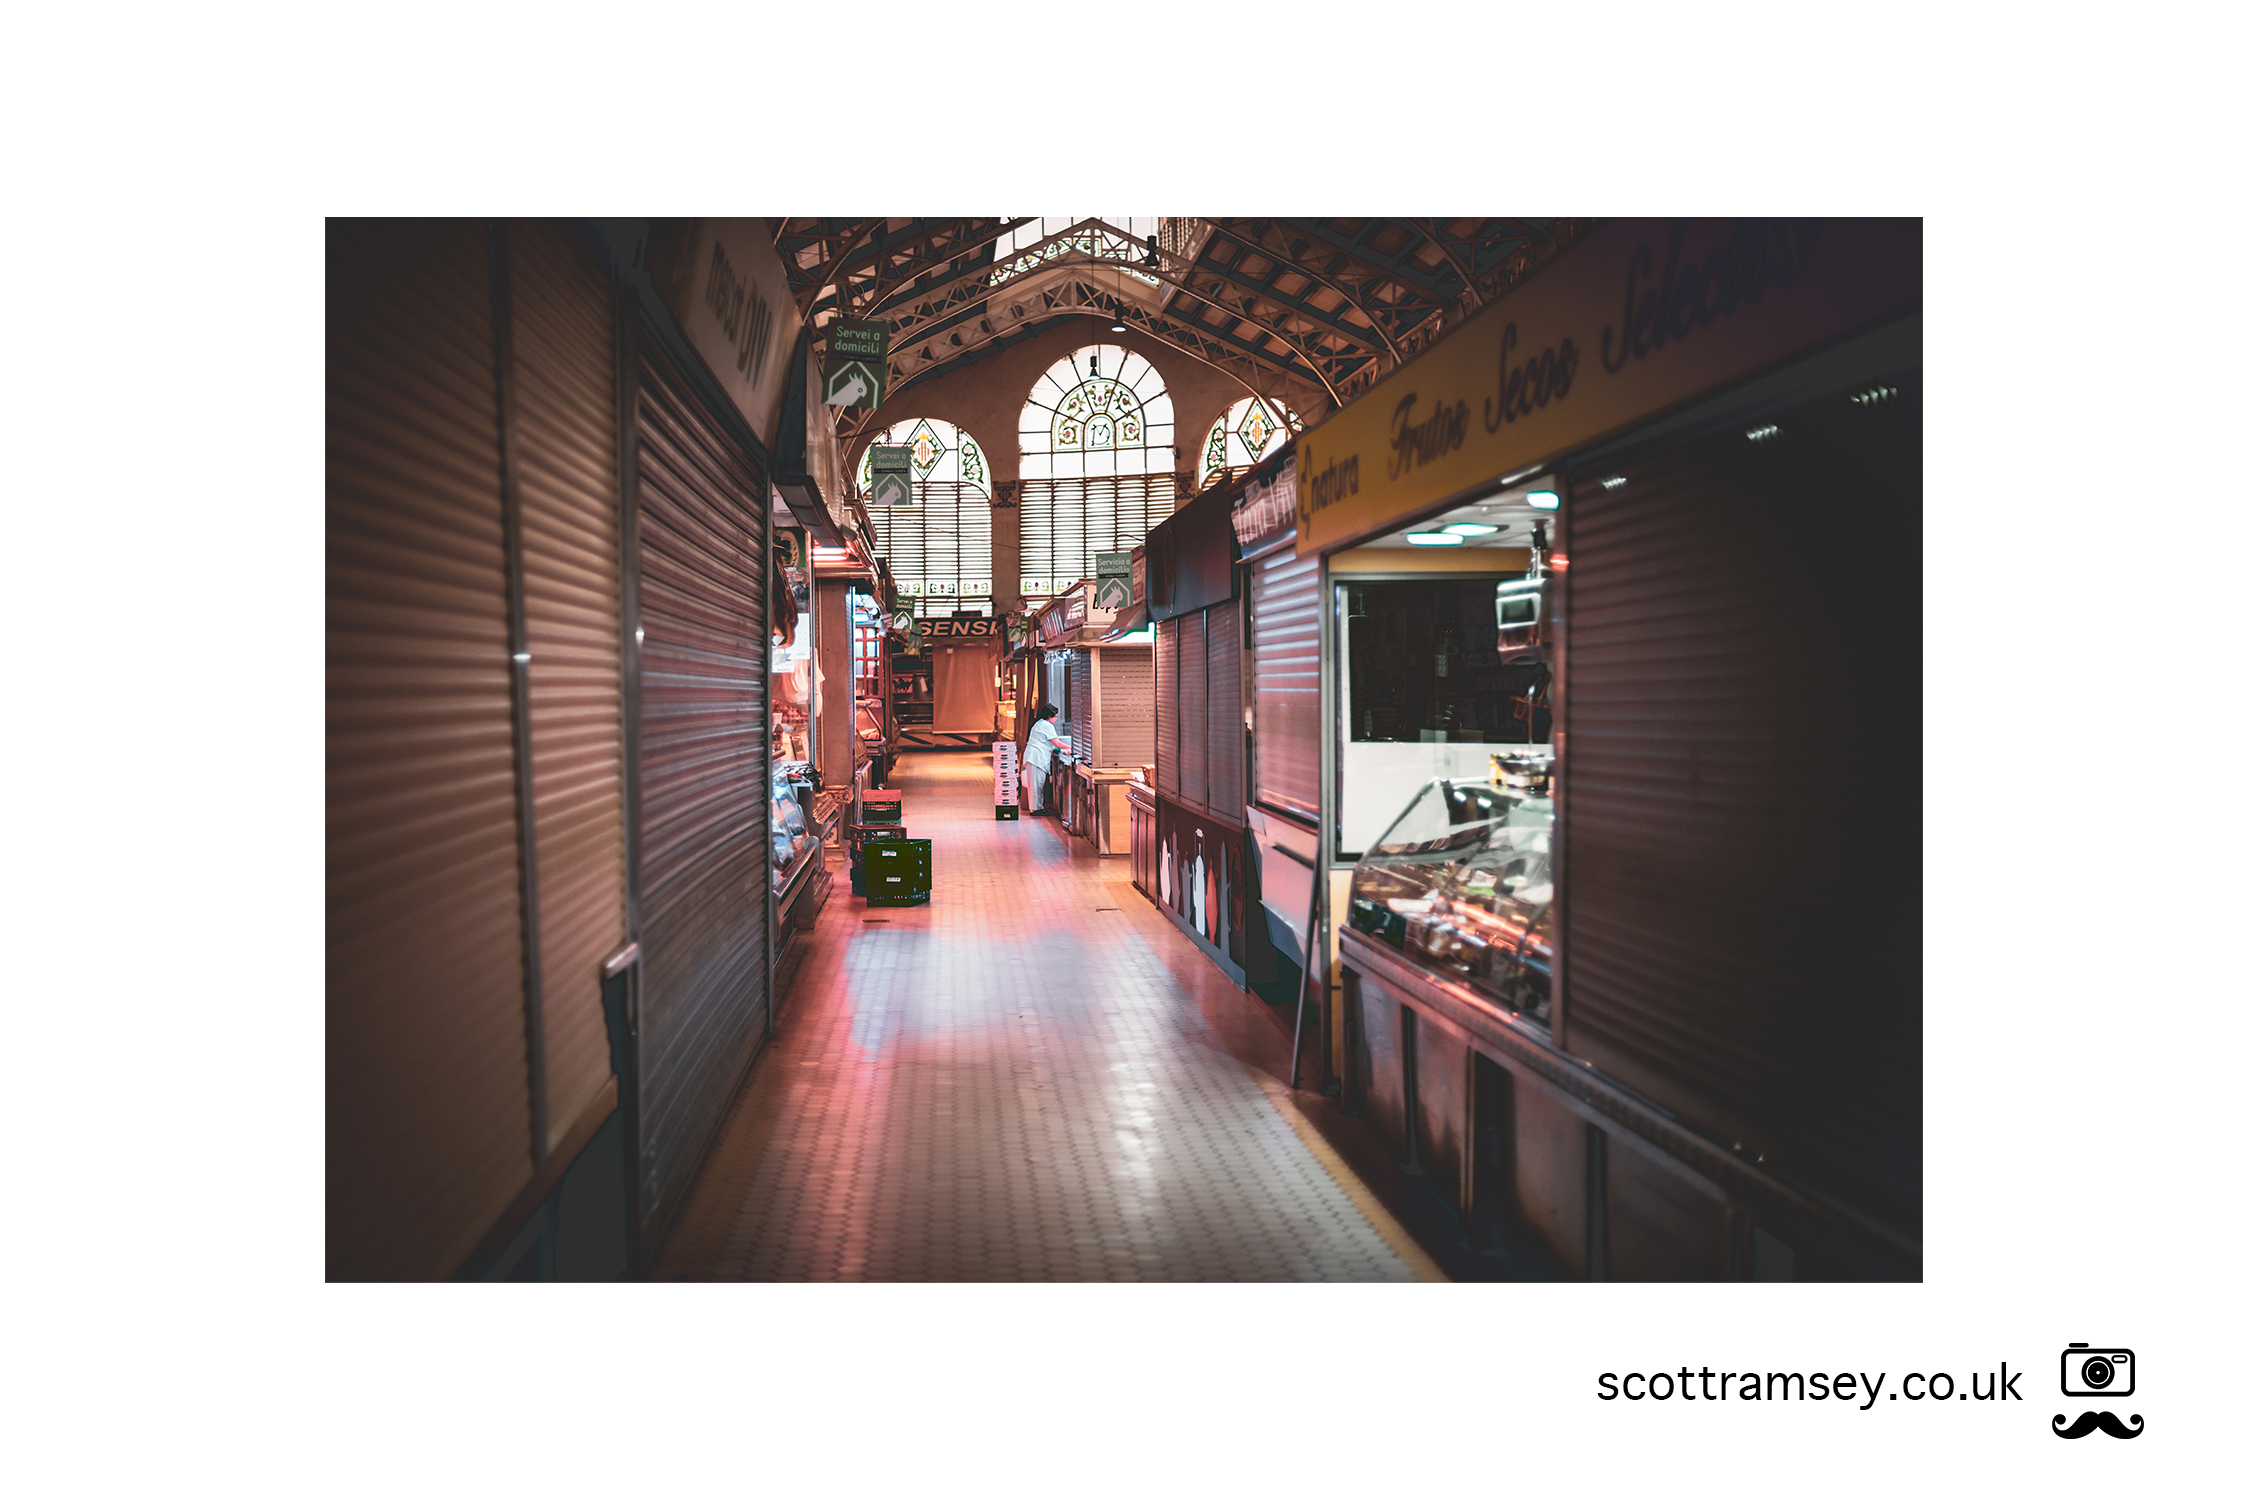 Early morning at The Central Market in Valencia, Spain and a woman prepares her market stall before customers arrive. Photo © Scott Ramsey